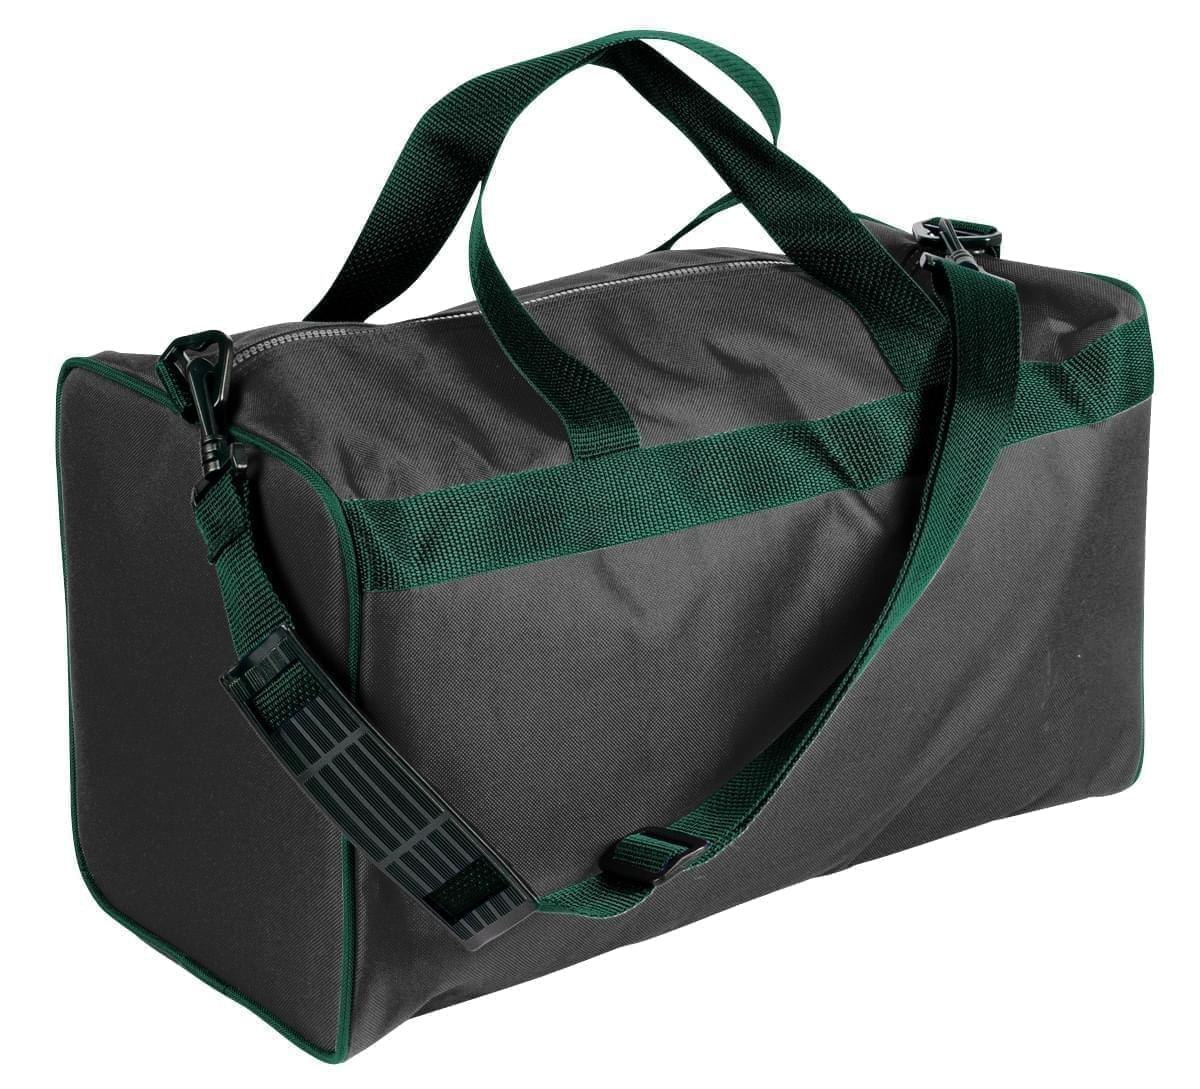 USA Made Nylon Poly Weekend Duffles, Black-Hunter Green, WLKX31AAOV